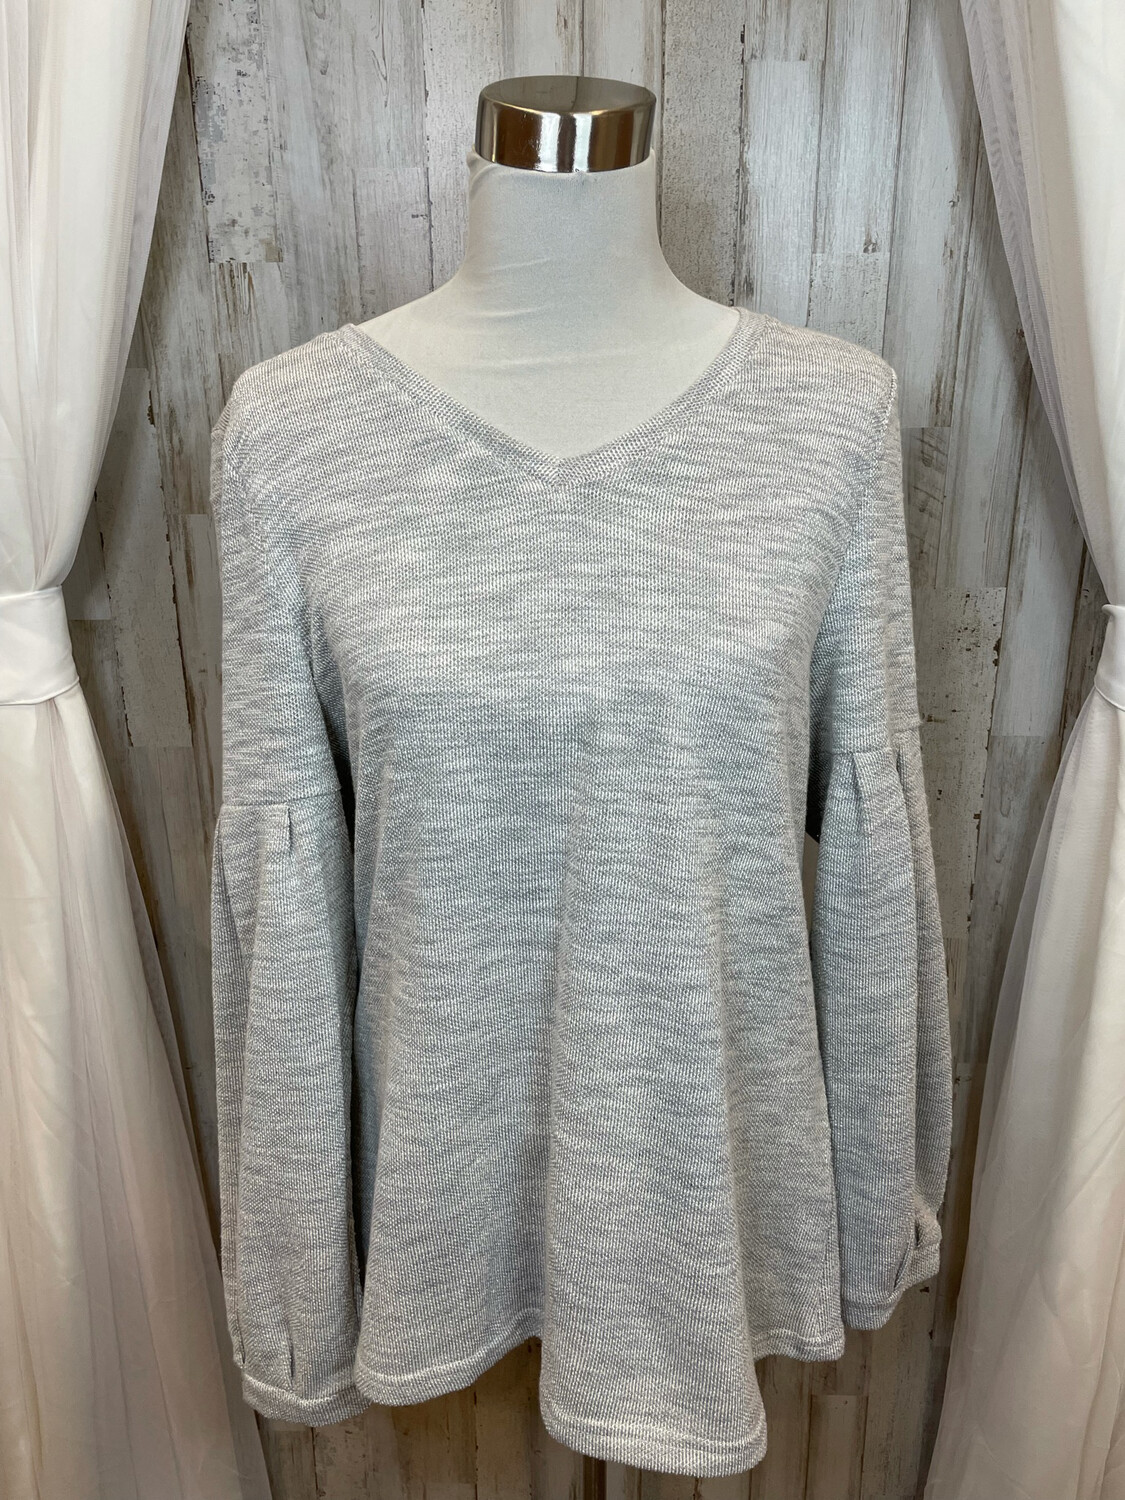 Livin' For The Weekend Grey V-neck Top w/Balloon Sleeve - L